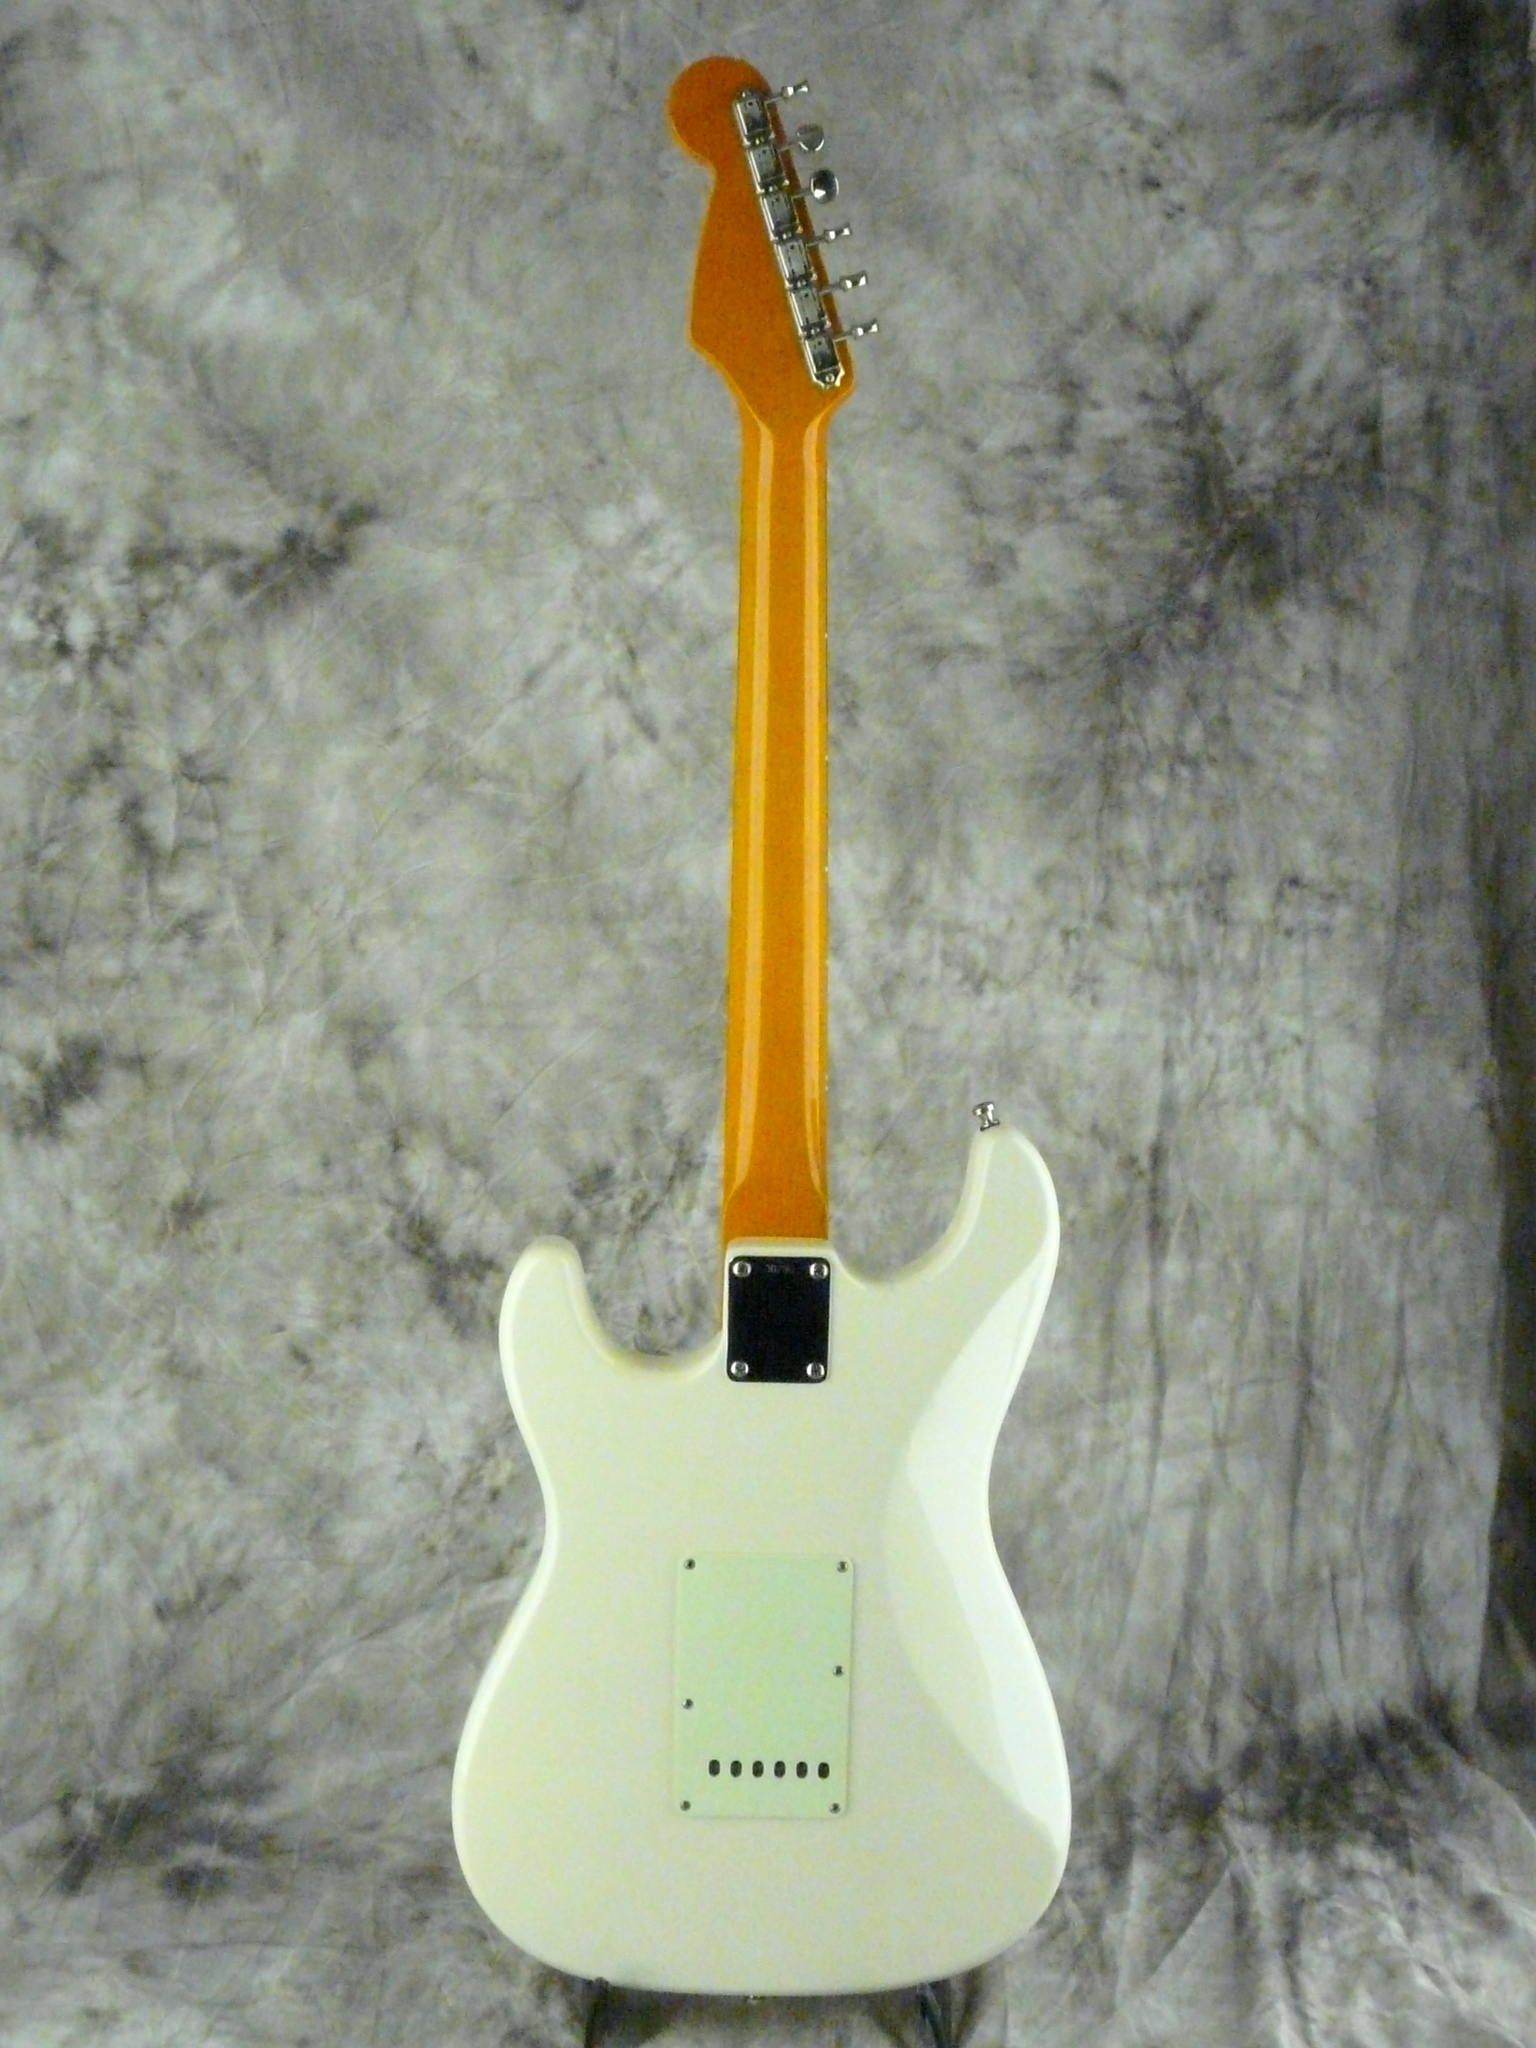 img/vintage/3254/Diego-Stratocaster-1998-olympic-white-004.JPG